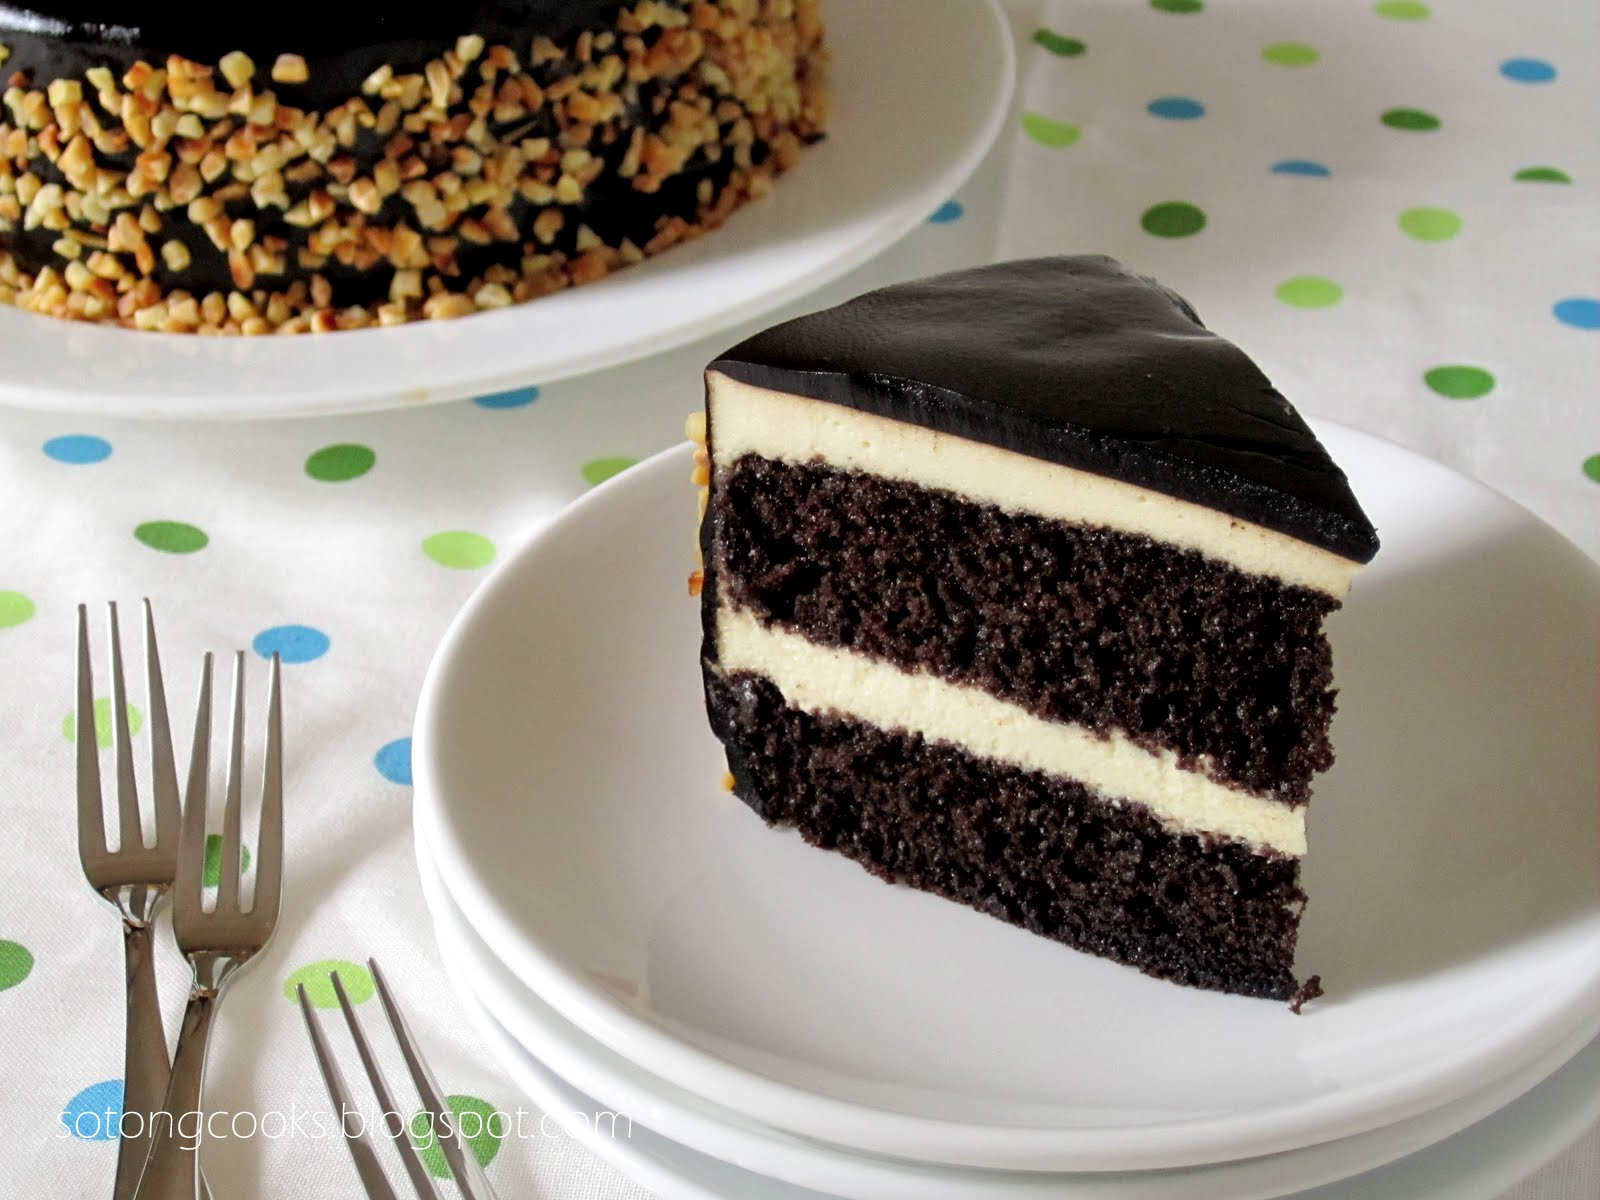 Sotong Cooks - Cooking it my way!: Black & White Mousse Cake